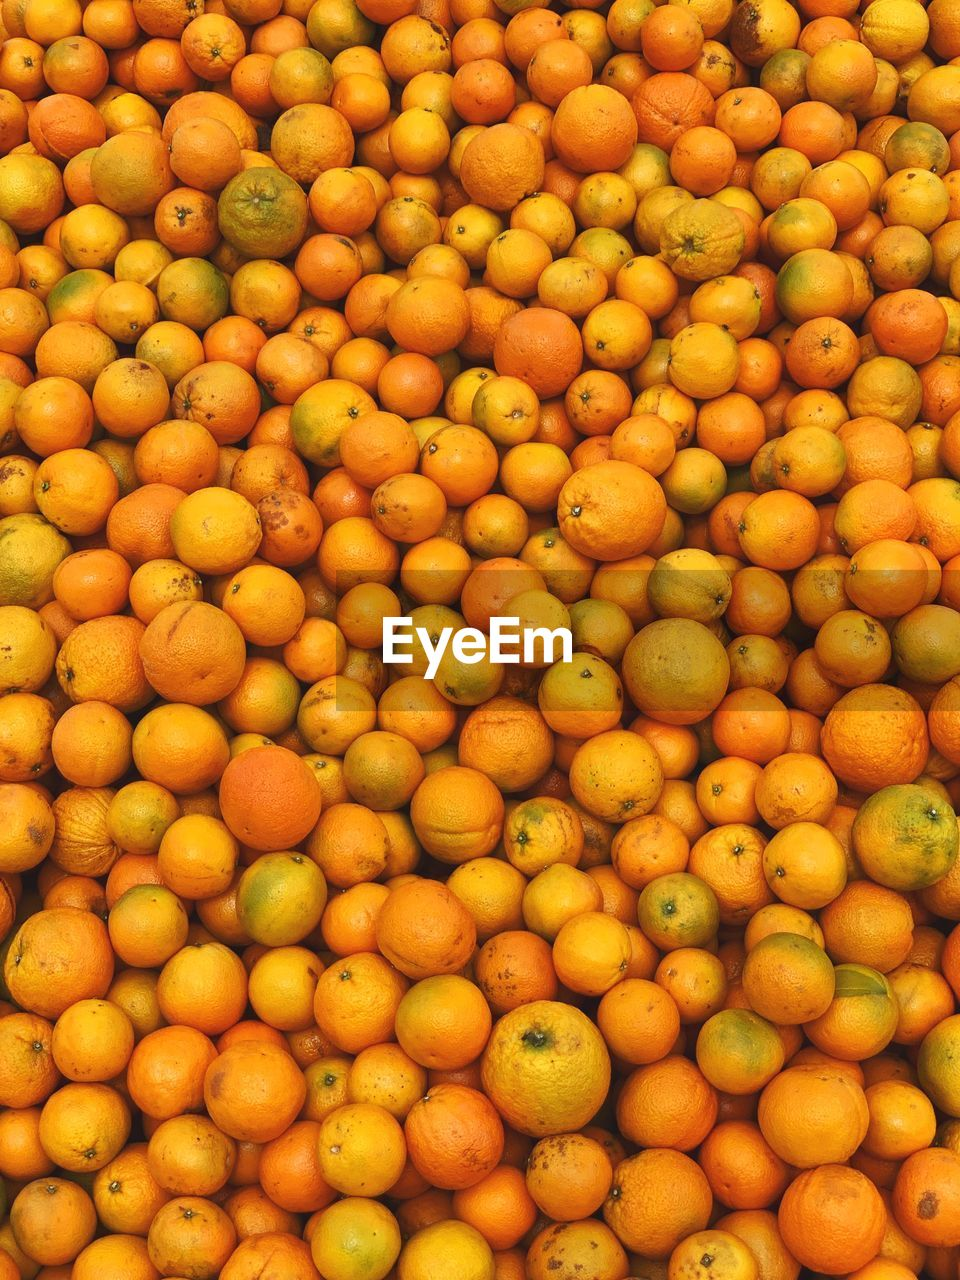 full frame, food, food and drink, backgrounds, healthy eating, freshness, abundance, fruit, large group of objects, wellbeing, no people, market, citrus fruit, orange color, market stall, still life, retail, high angle view, close-up, yellow, orange